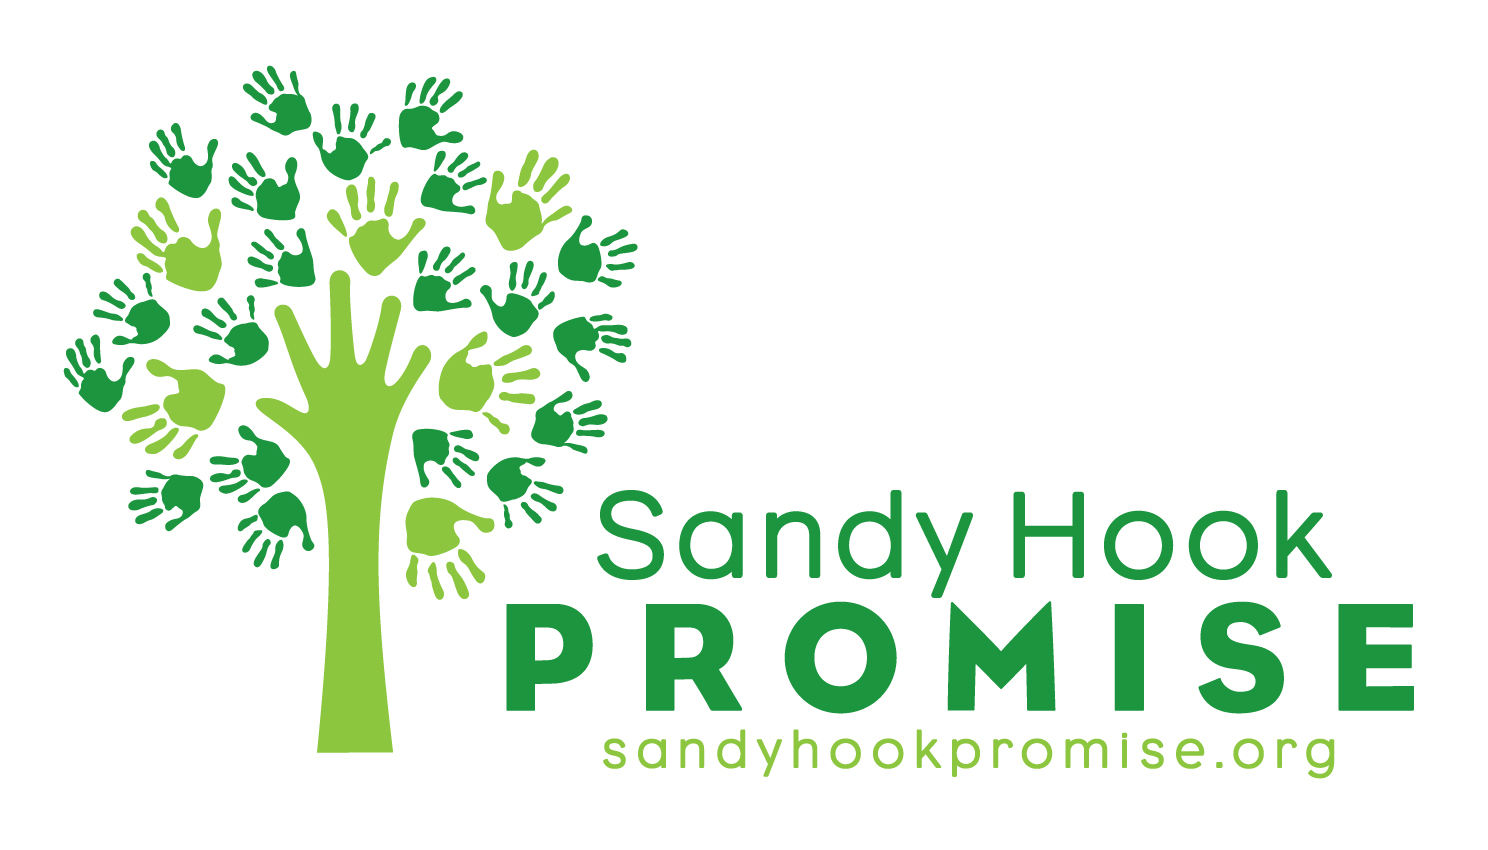 Sandy Hook Promise, a group based around preventing future school shootings and gun violence created by the parents of the killed Sandy Hook children.